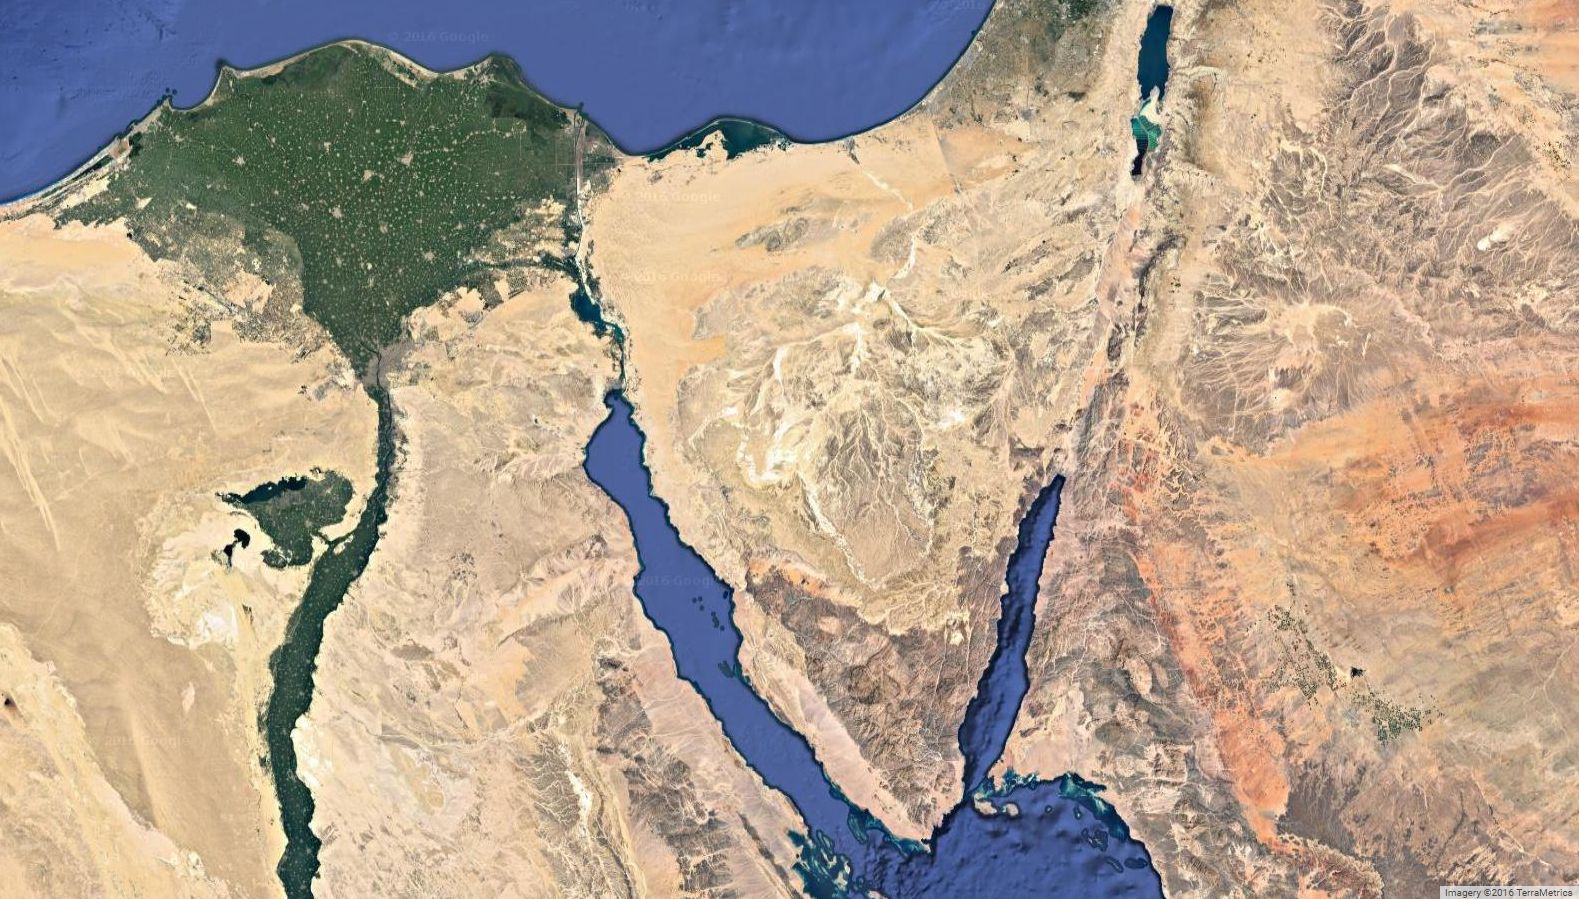 Is Palestine on the map? - Oxford Education Blog on masada map google, guyana map google, hungary map google, nauru map google, swaziland map google, trinidad and tobago map google, venezuela map google, vatican city map google, anguilla map google, monaco map google, bermuda map google, belarus map google, arabian peninsula map google, congo map google, uzbekistan map google, corinth map google, byzantine empire map google, baghdad map google, cook islands map google, georgia map google,